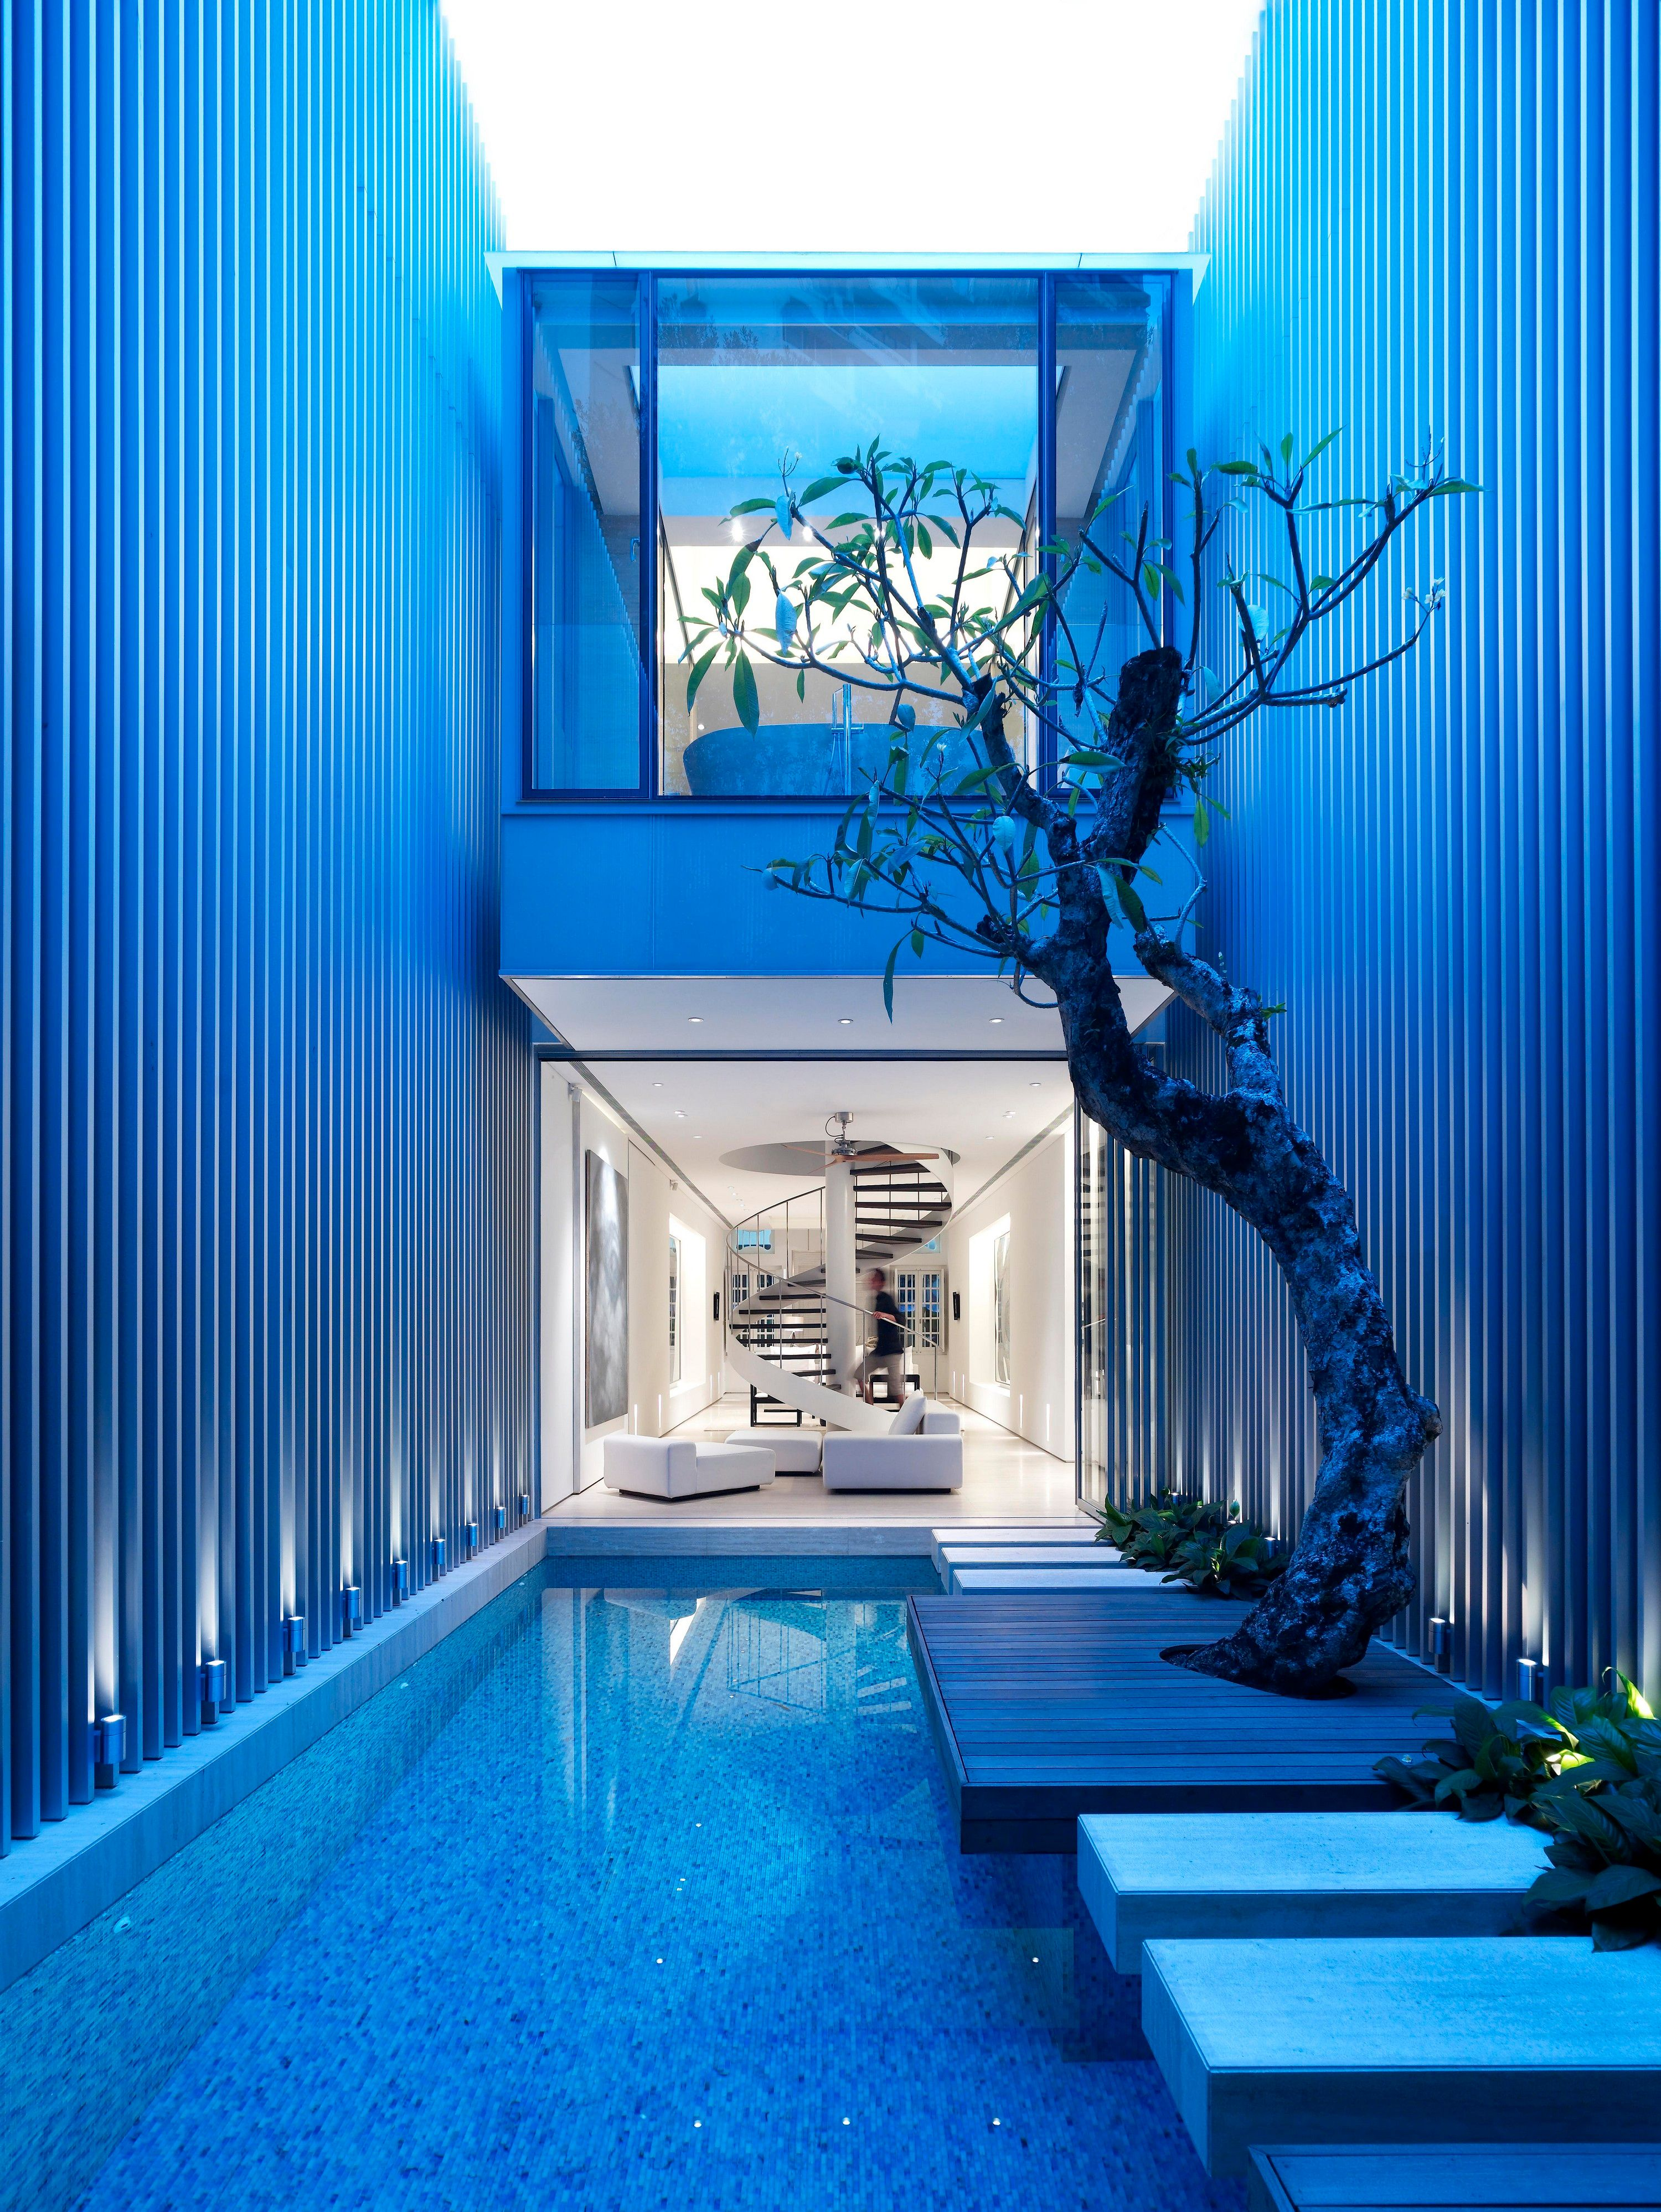 55 blair road by ongong https archello com project